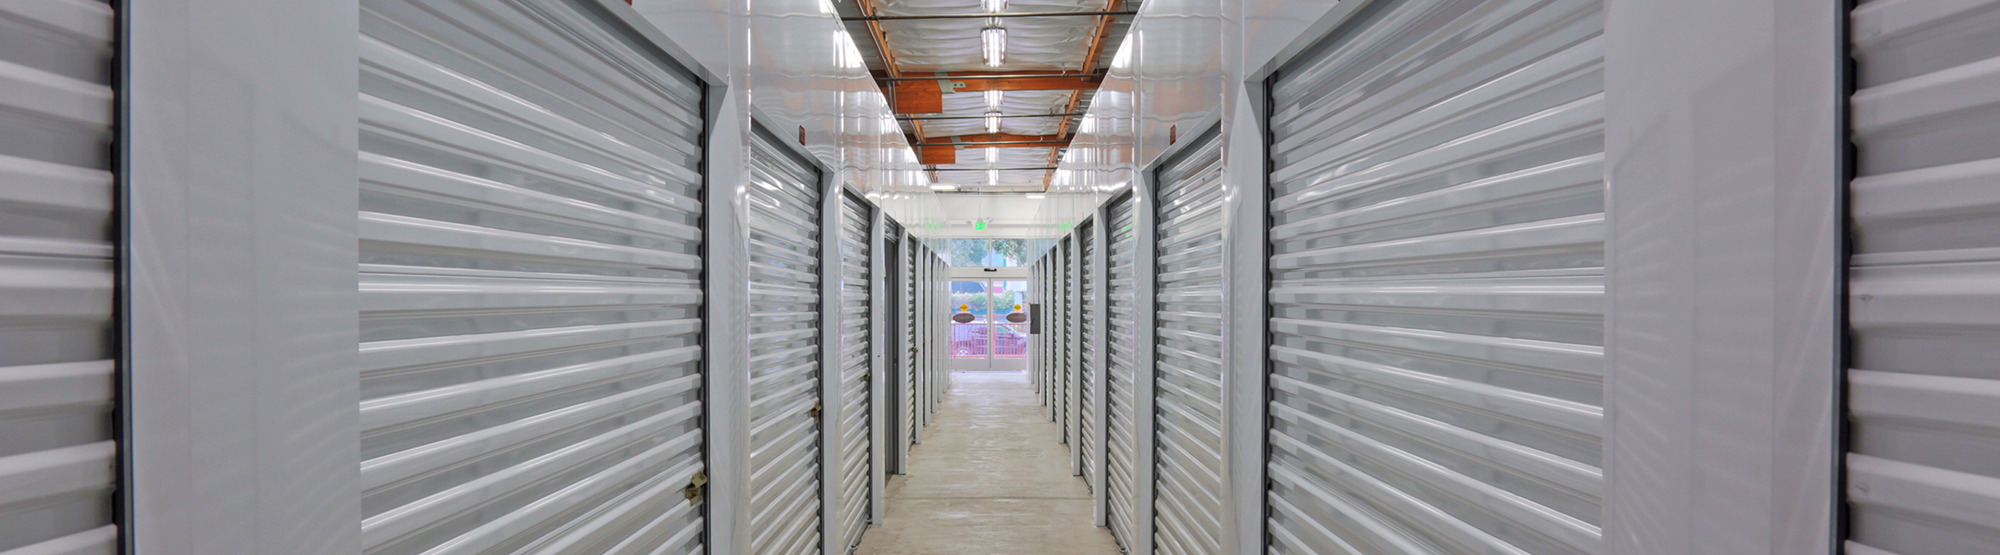 Self Storage in California and Utah